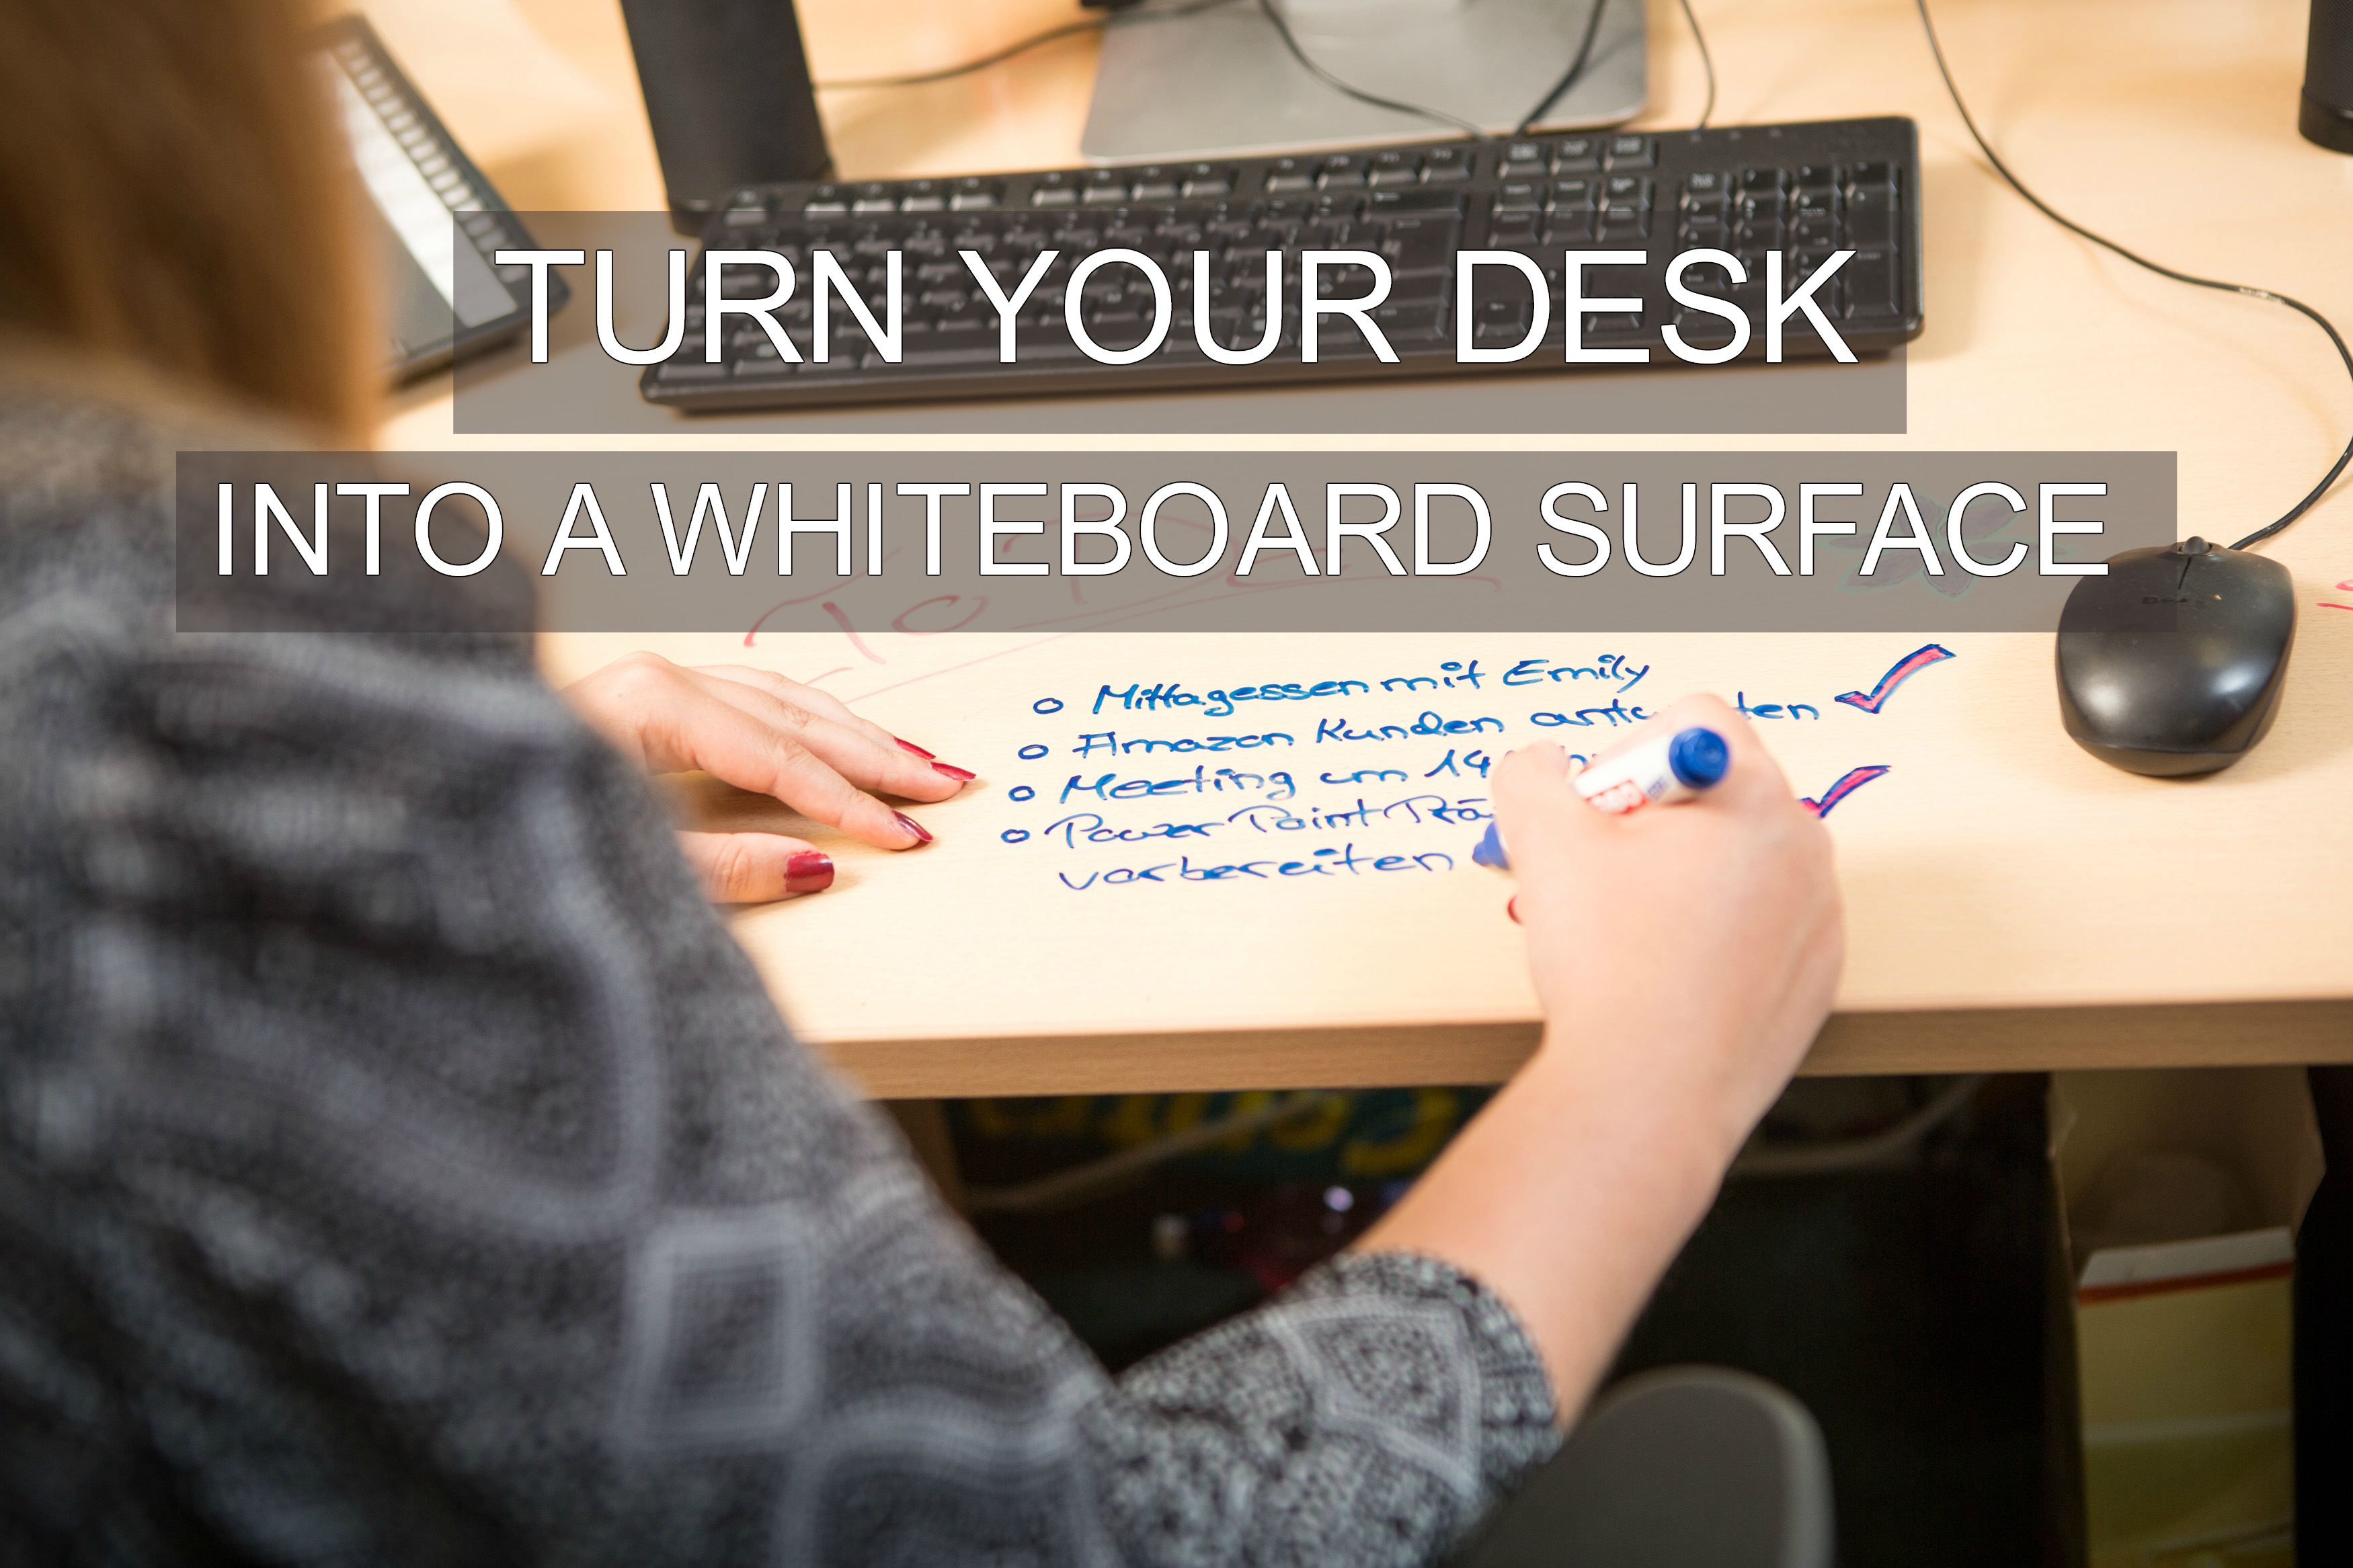 Turn A Wall Into A Whiteboard Turn Your Desk Into A Whiteboard Surface Smarter Surfaces Blog